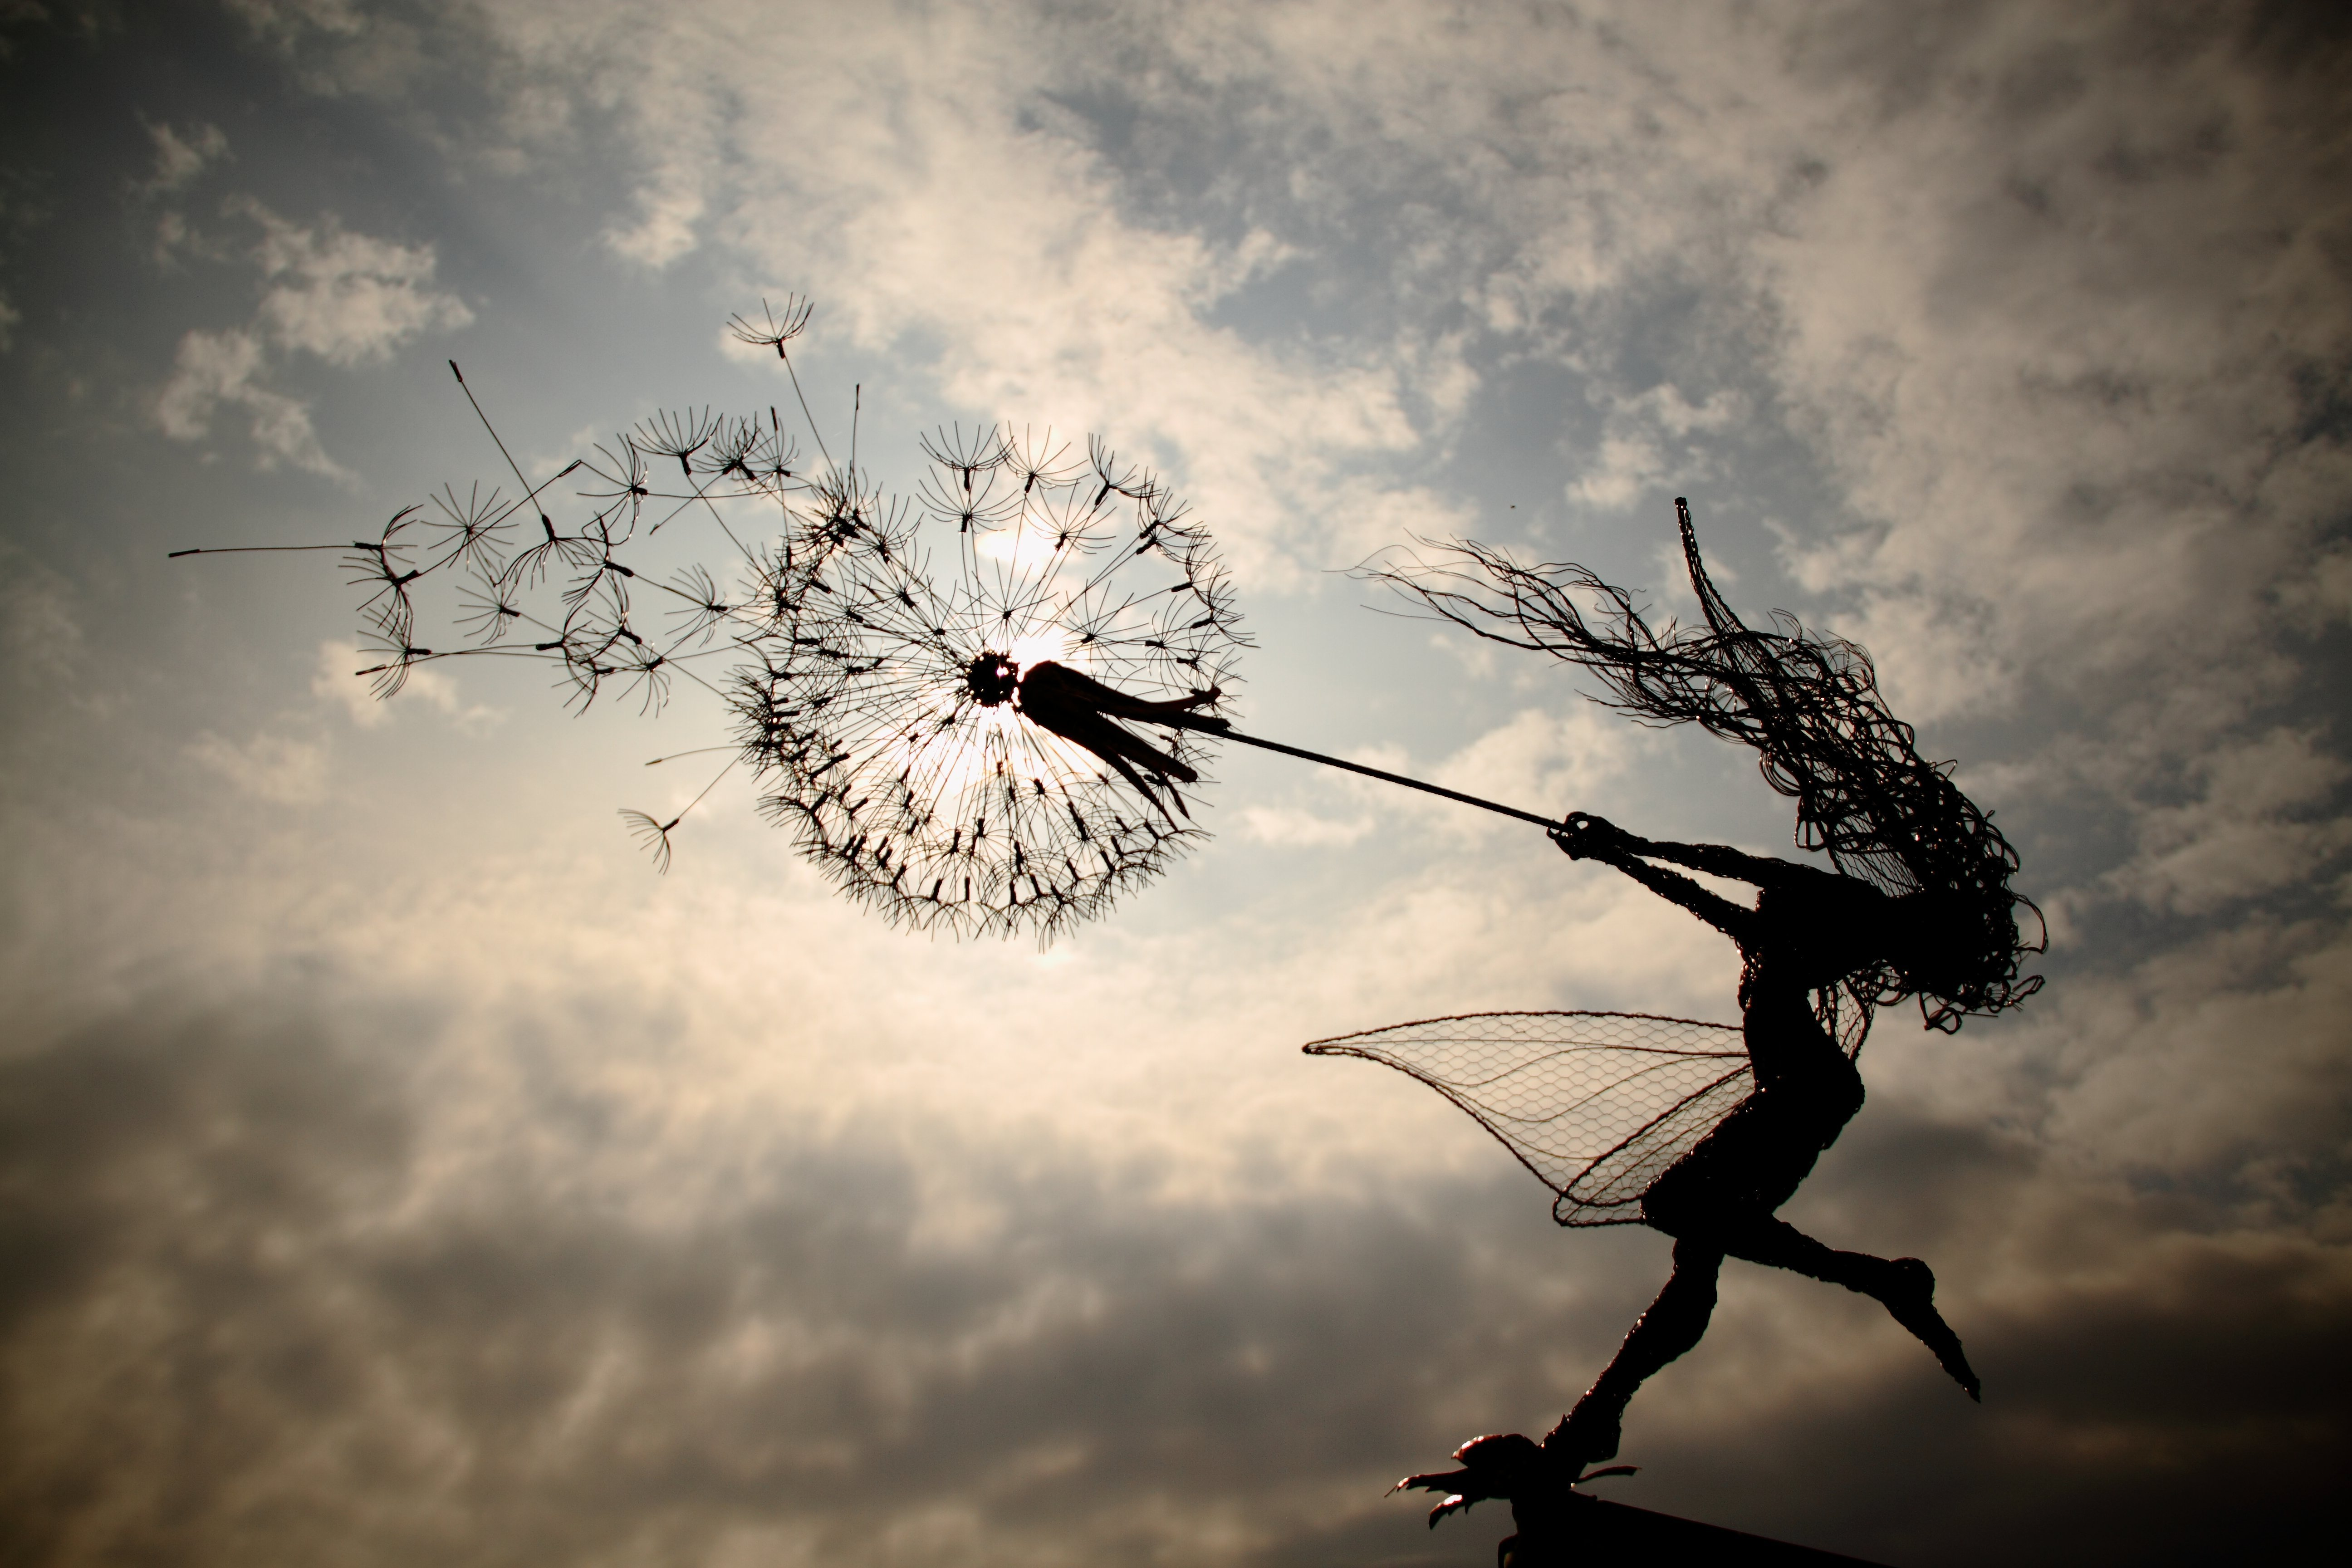 dancing with dandelions and robin wight blog graphiste sculptures photos ver vie